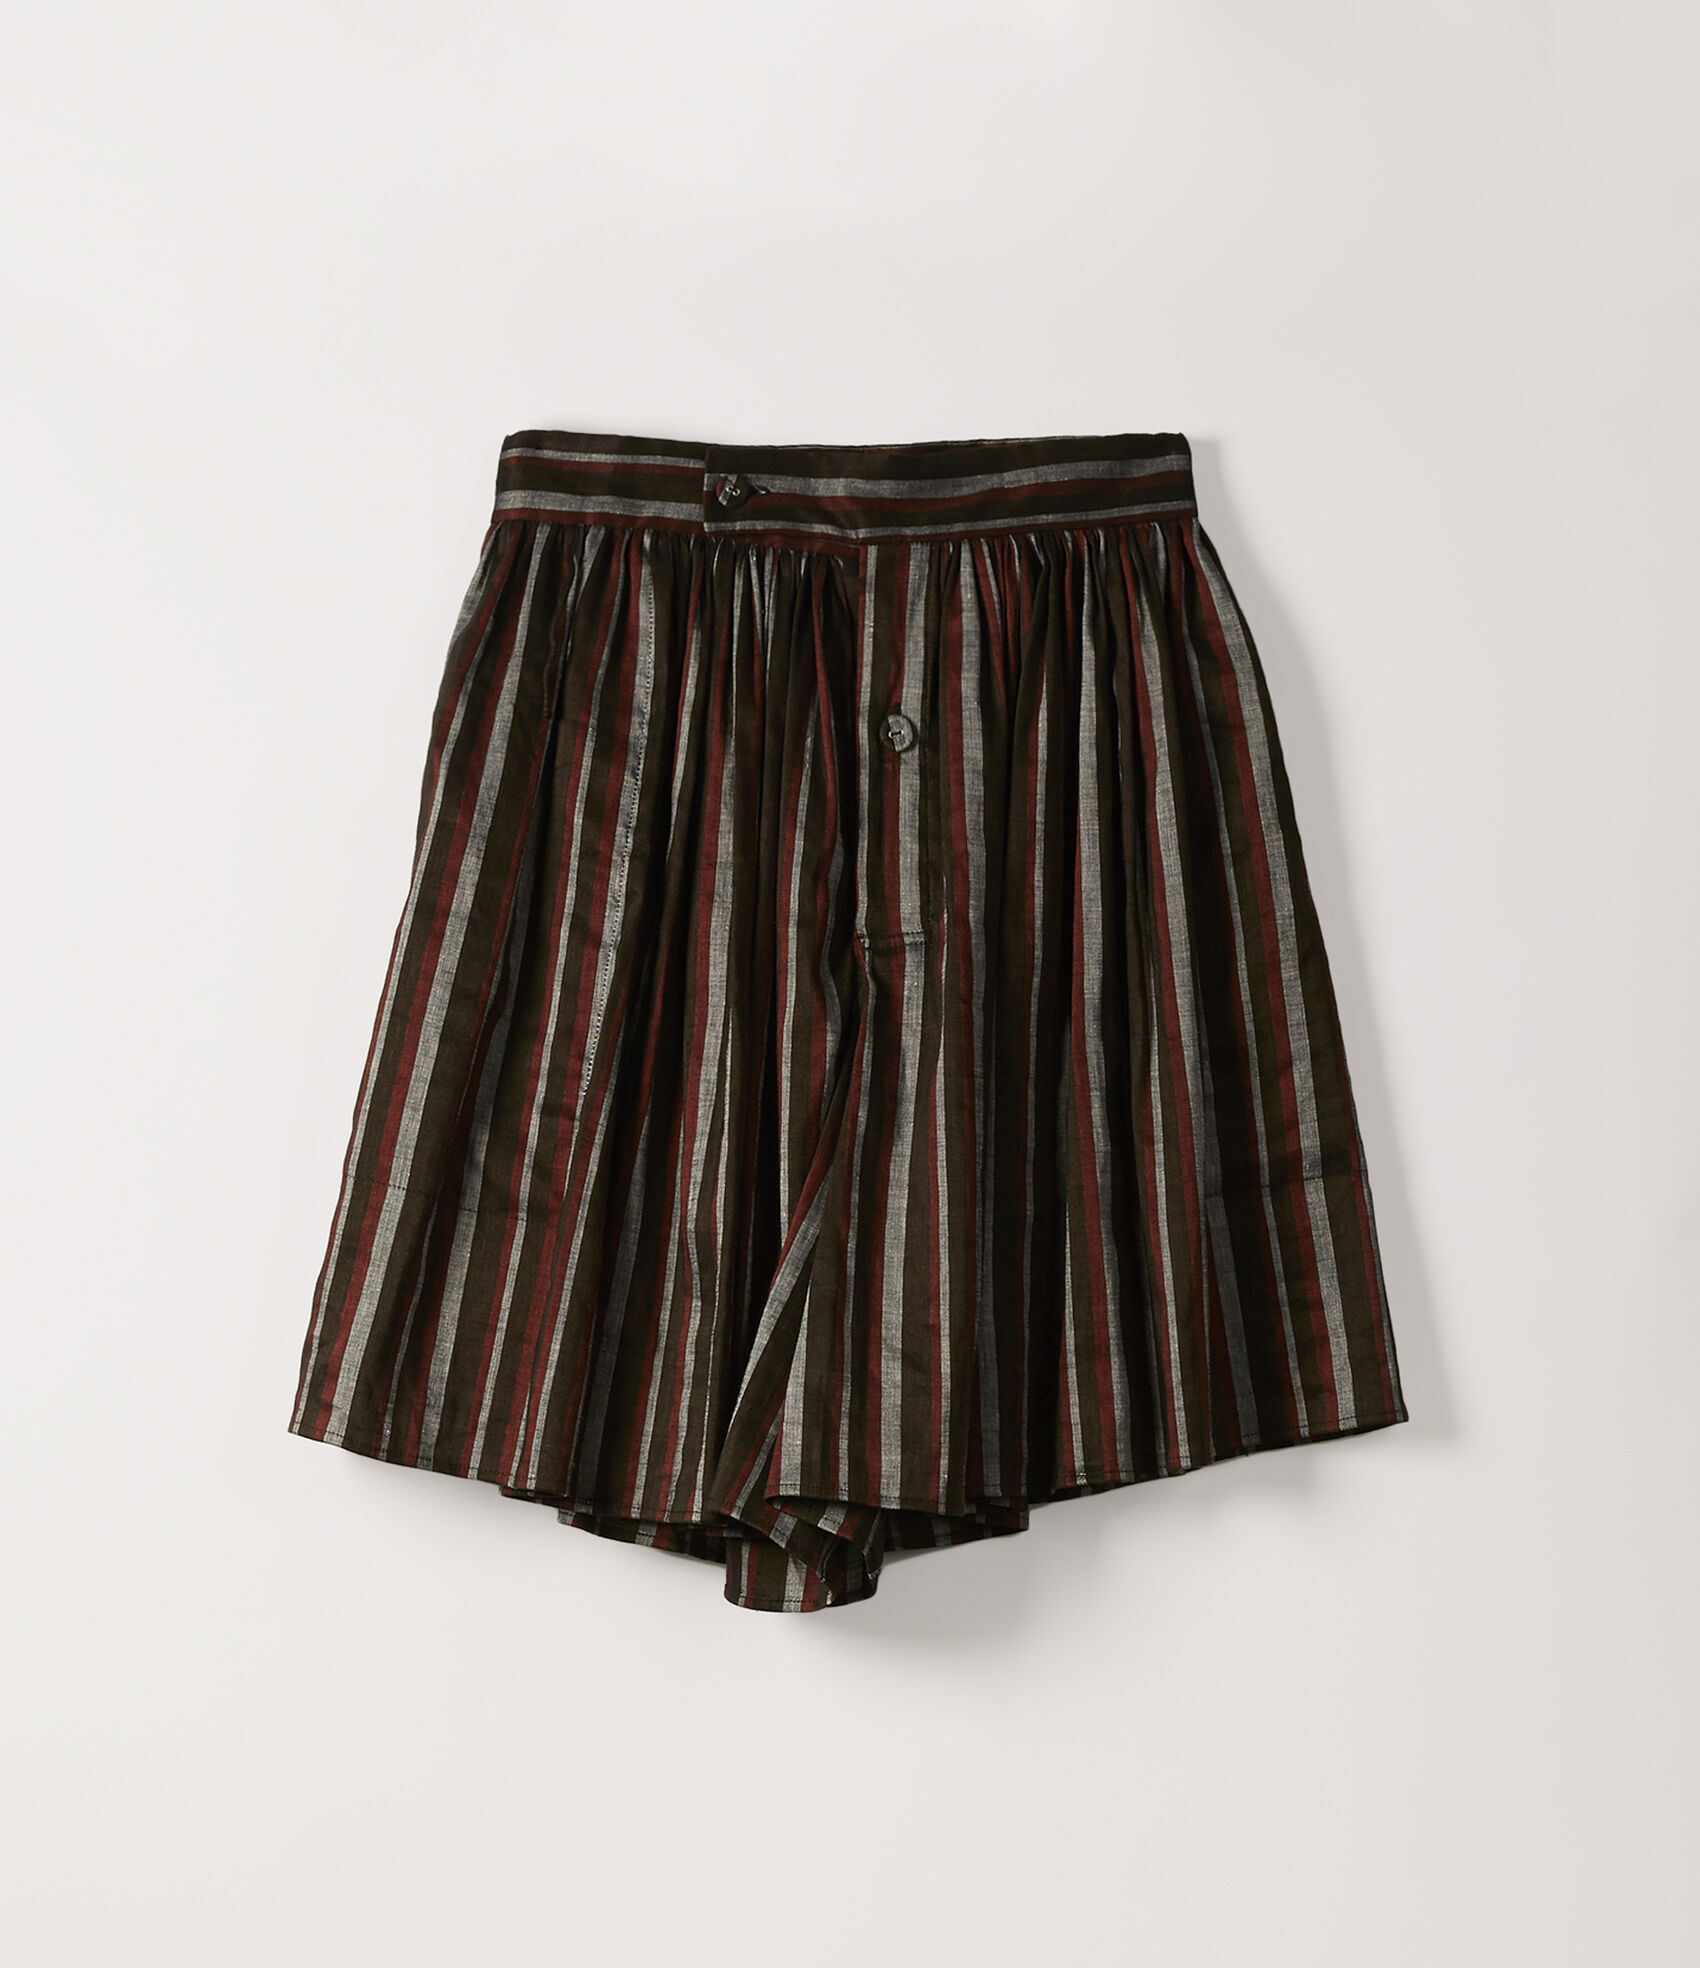 f6e68fdc01de Vivienne Westwood Trousers and shorts | Women's Clothing ...